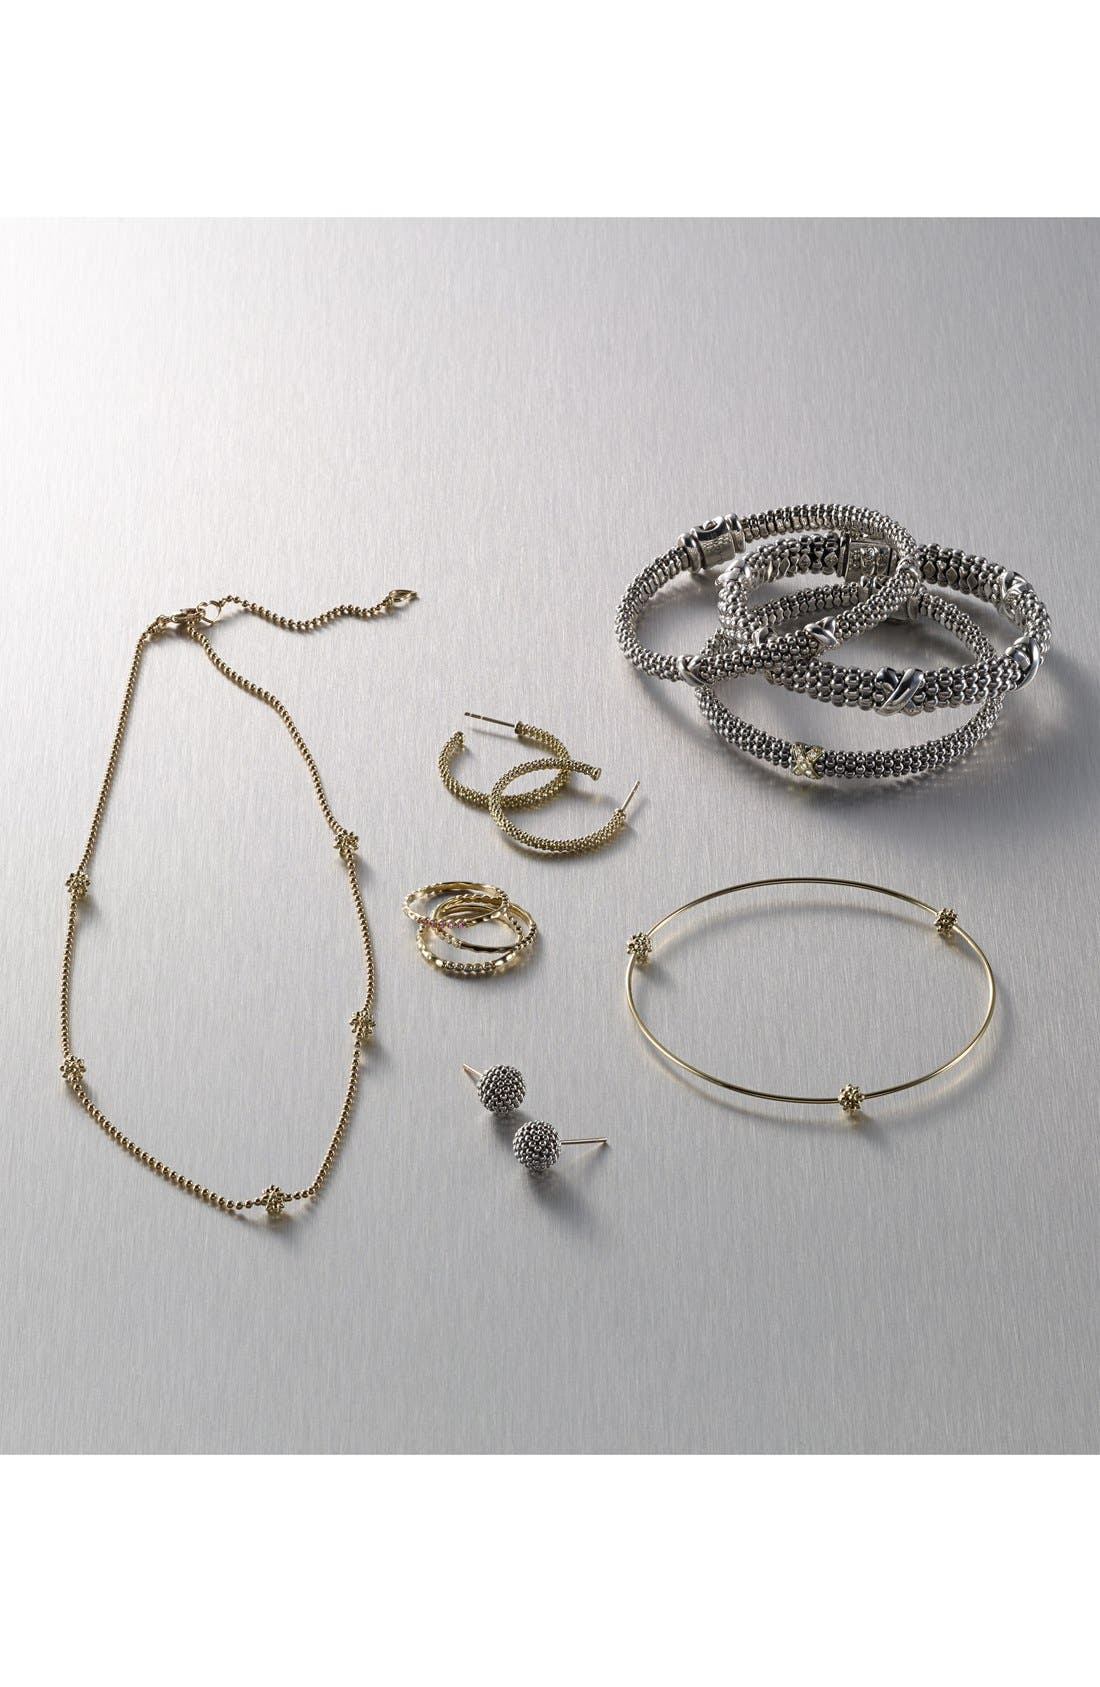 'Signature Caviar' Oval Rope Bracelet,                             Alternate thumbnail 4, color,                             STERLING SILVER